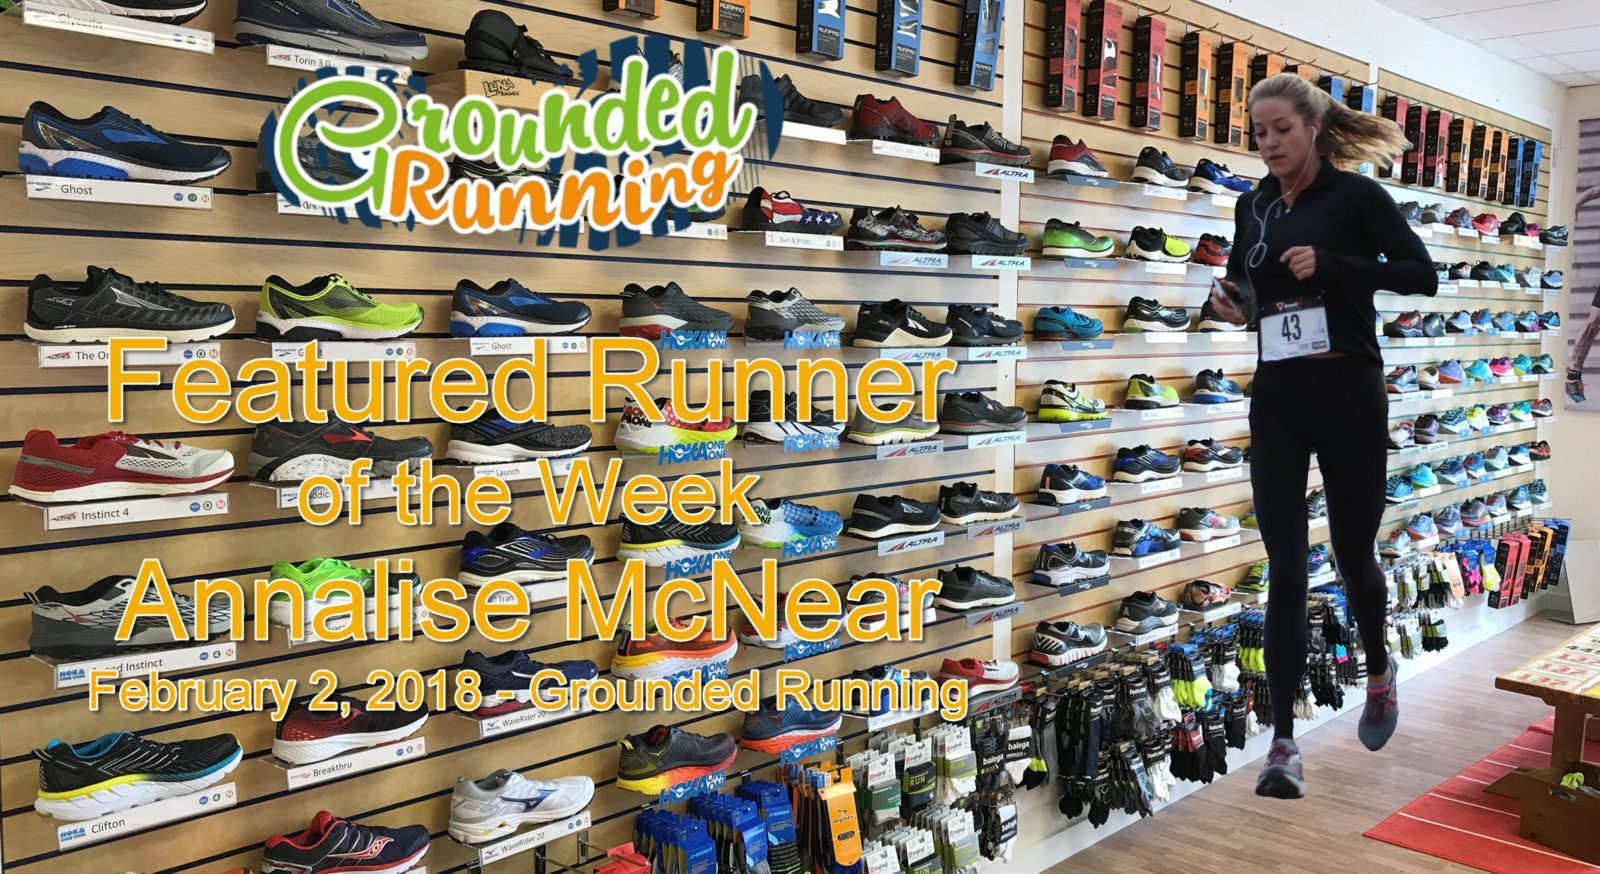 Annalise McNear - Featured Runner of the Week